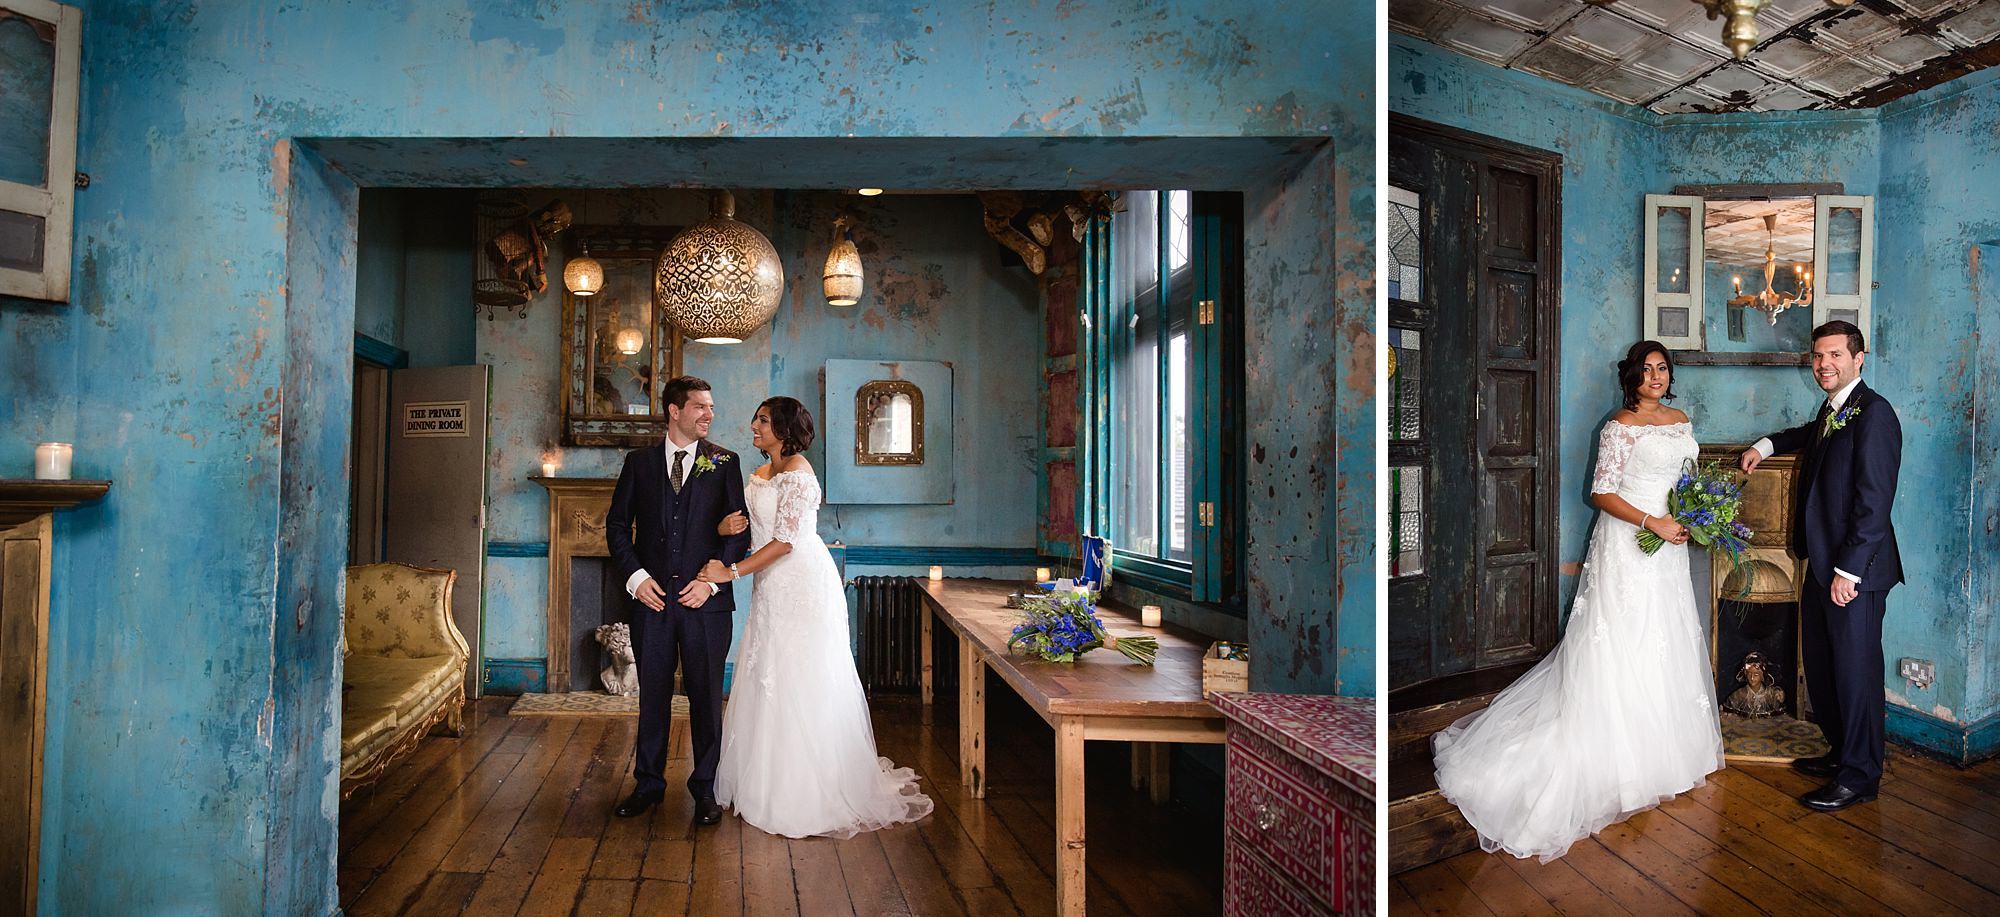 Paradise by way of Kensal Green wedding bride and groom together